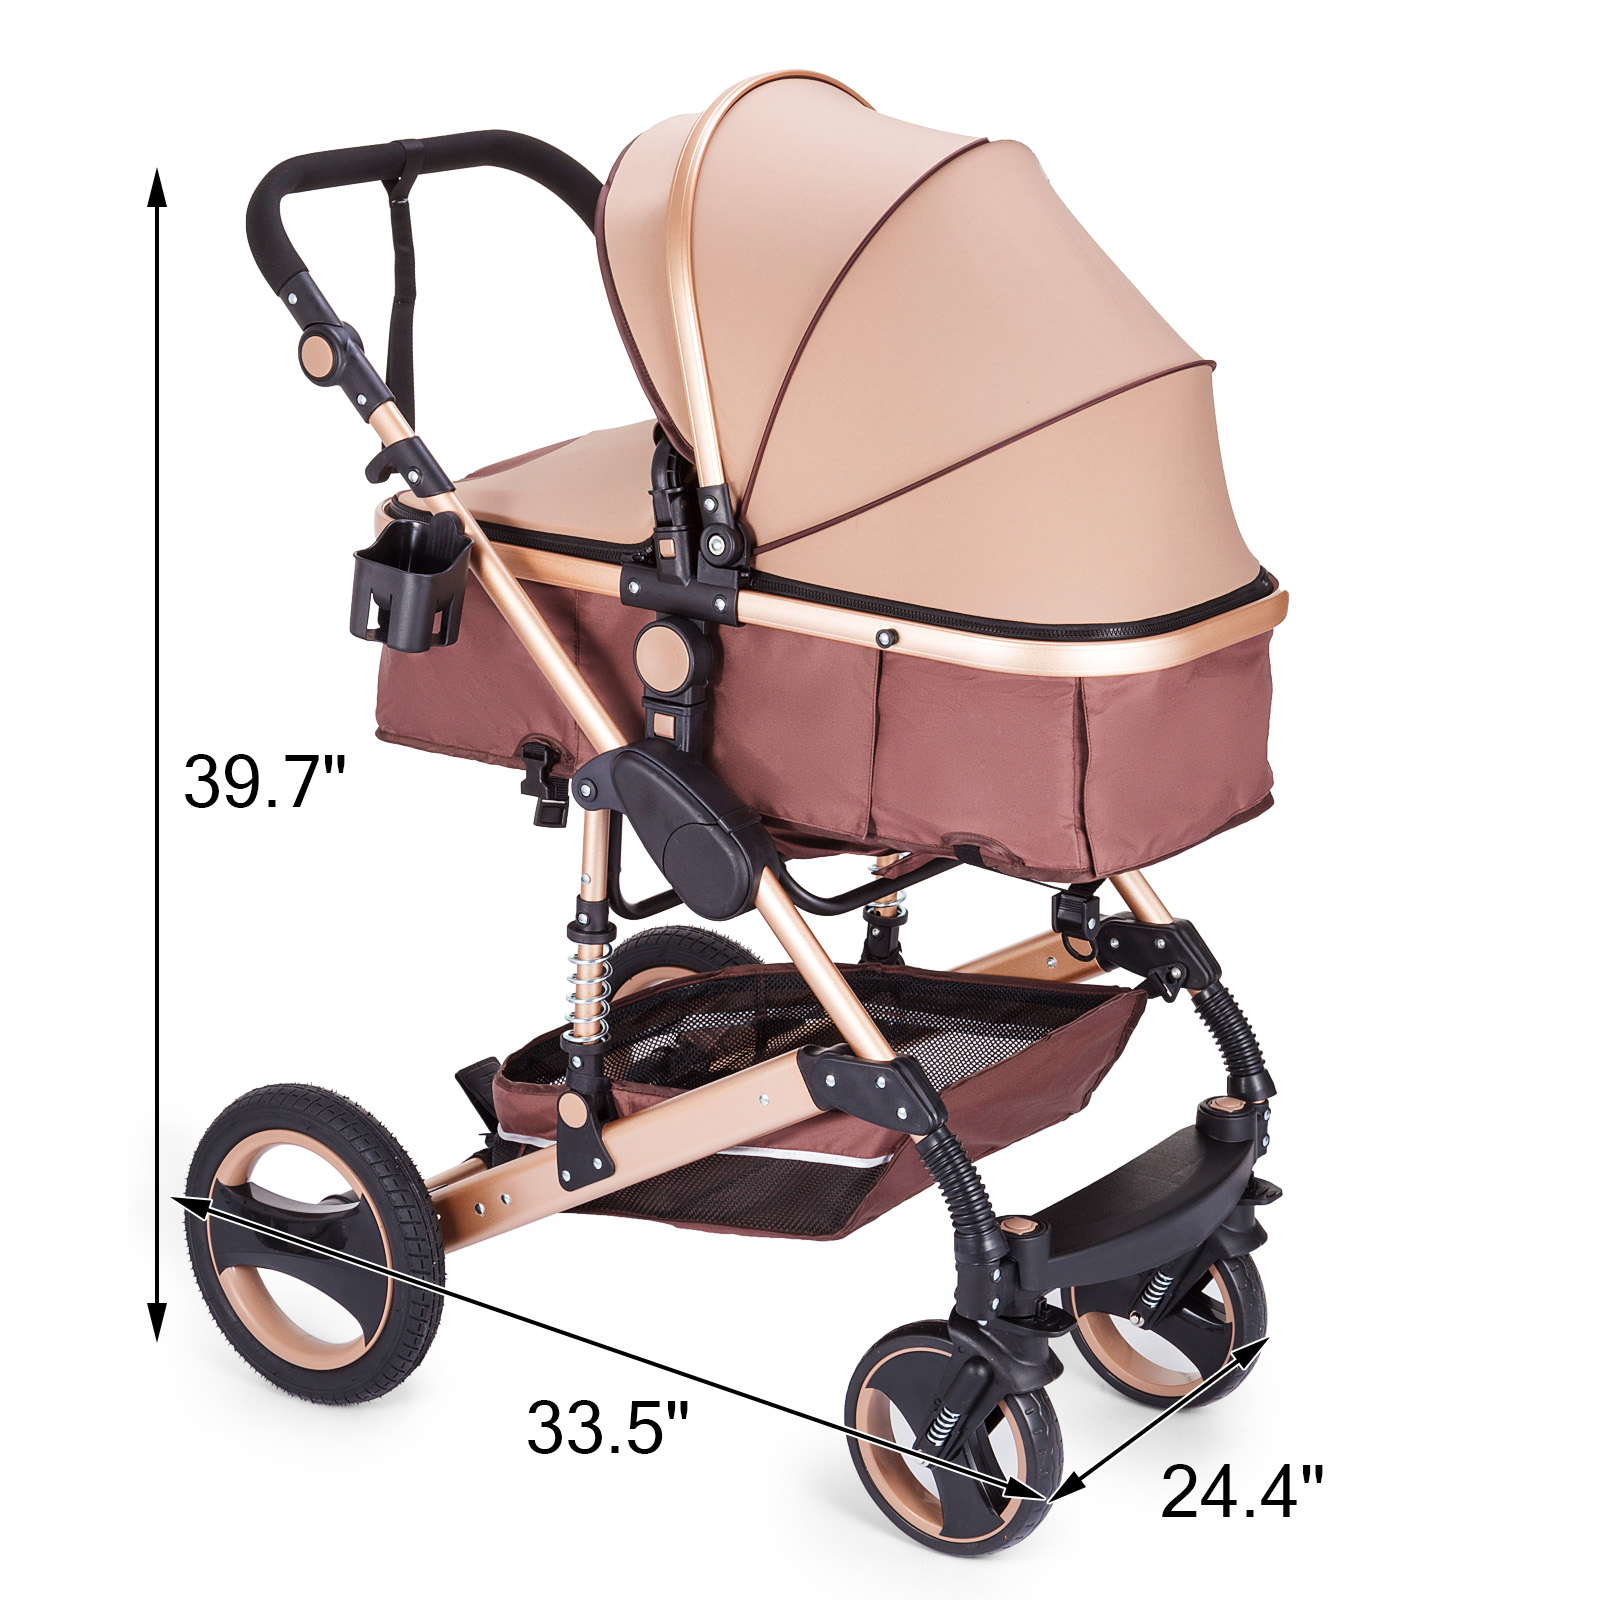 Newborn Baby Buggy Reviews Details About 3 In 1 Luxury Baby Stroller Newborn Pram Foldable Infant Pushchair Bassinet Car